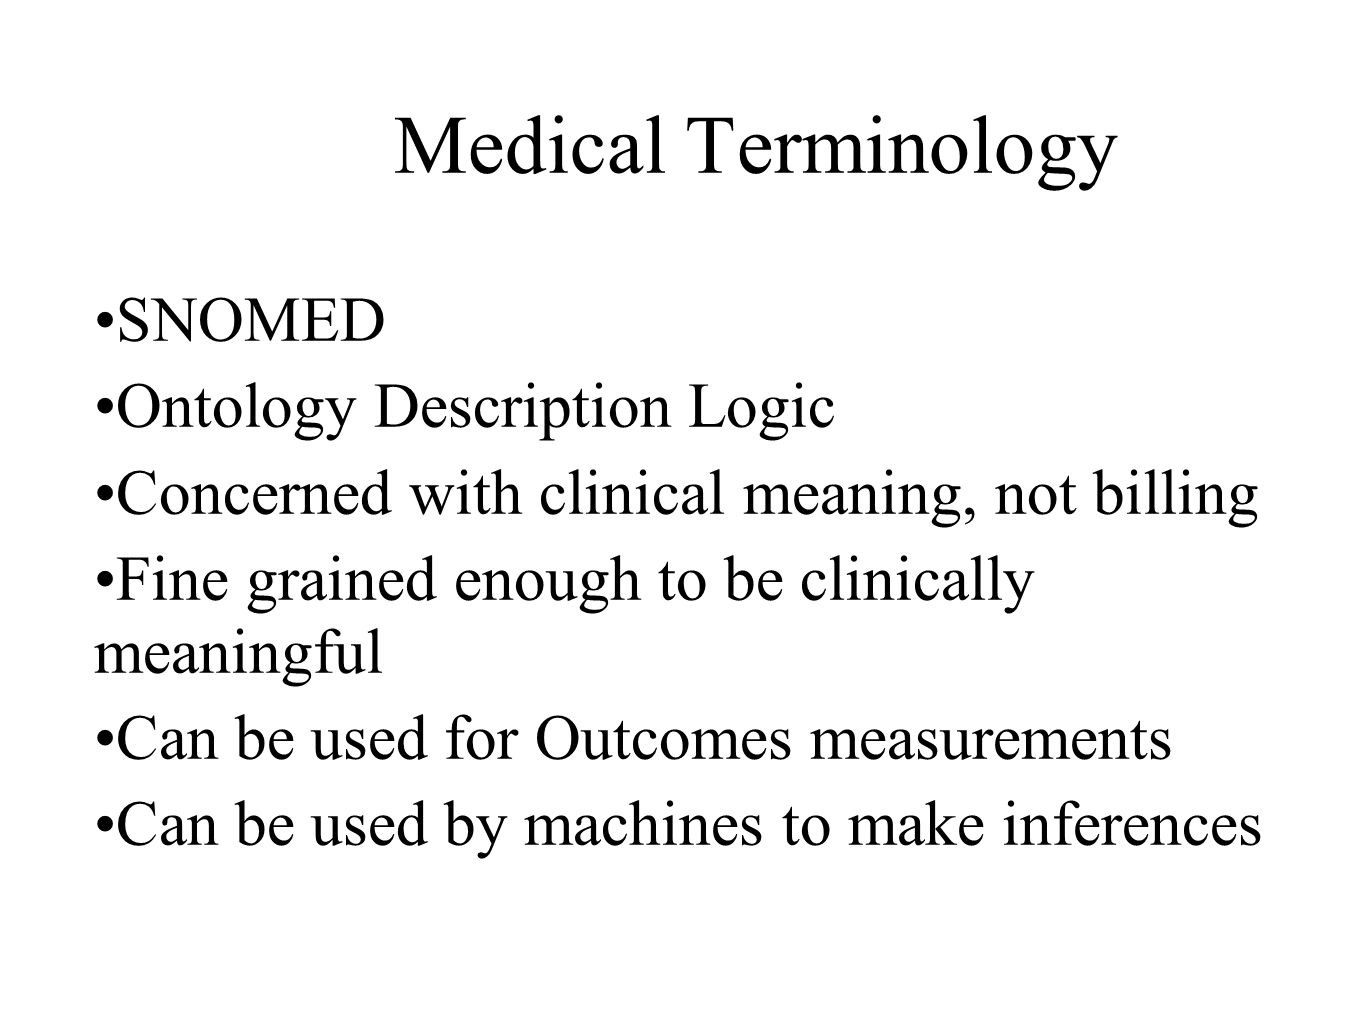 Medical Terminology SNOMED Ontology Description Logic Concerned with clinical meaning, not billing Fine grained enough to be clinically meaningful Can